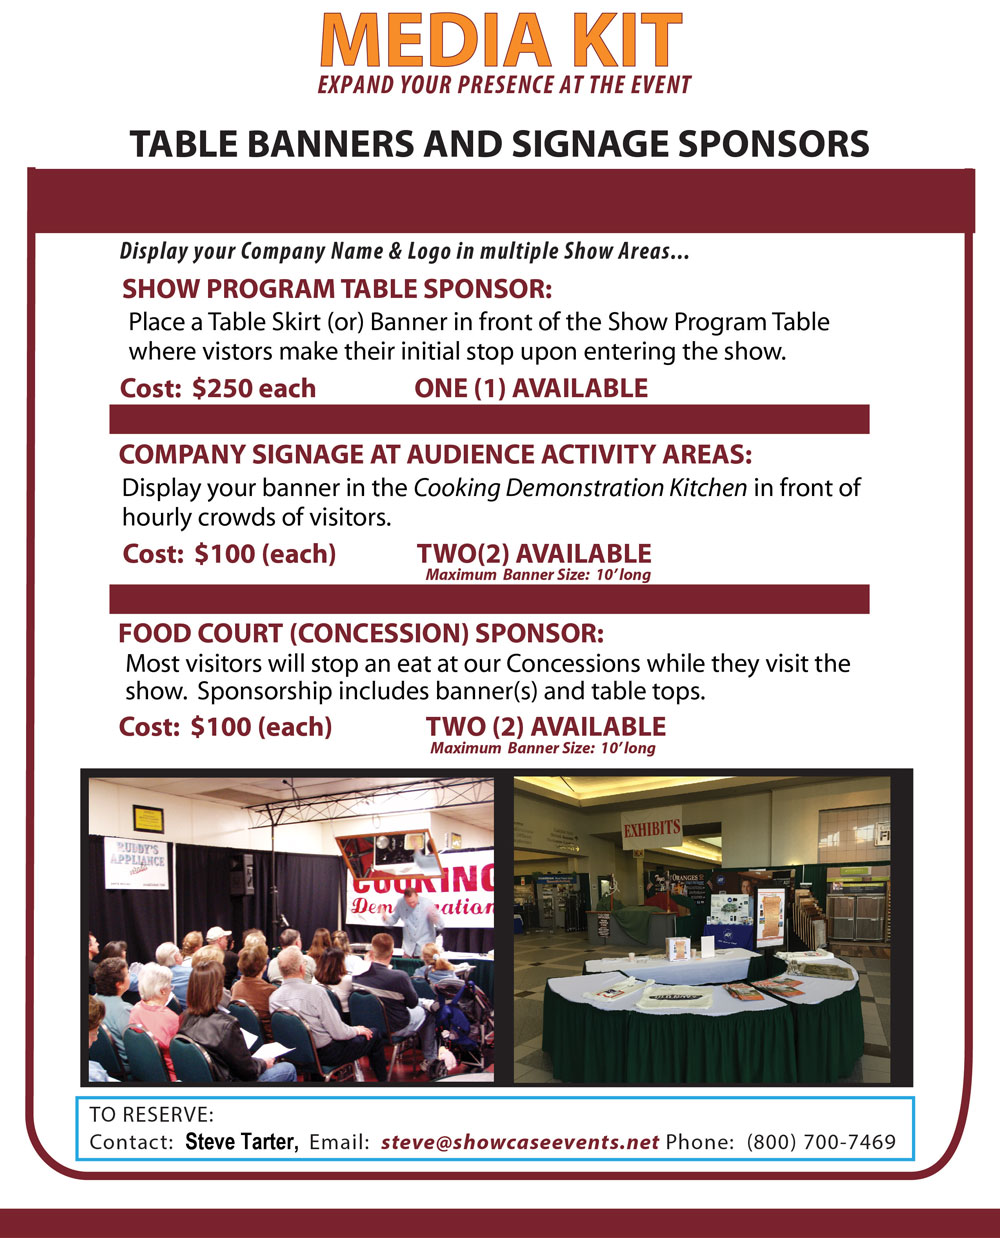 VI0917-Table-Top-&-Signage-Sponsors.jpg